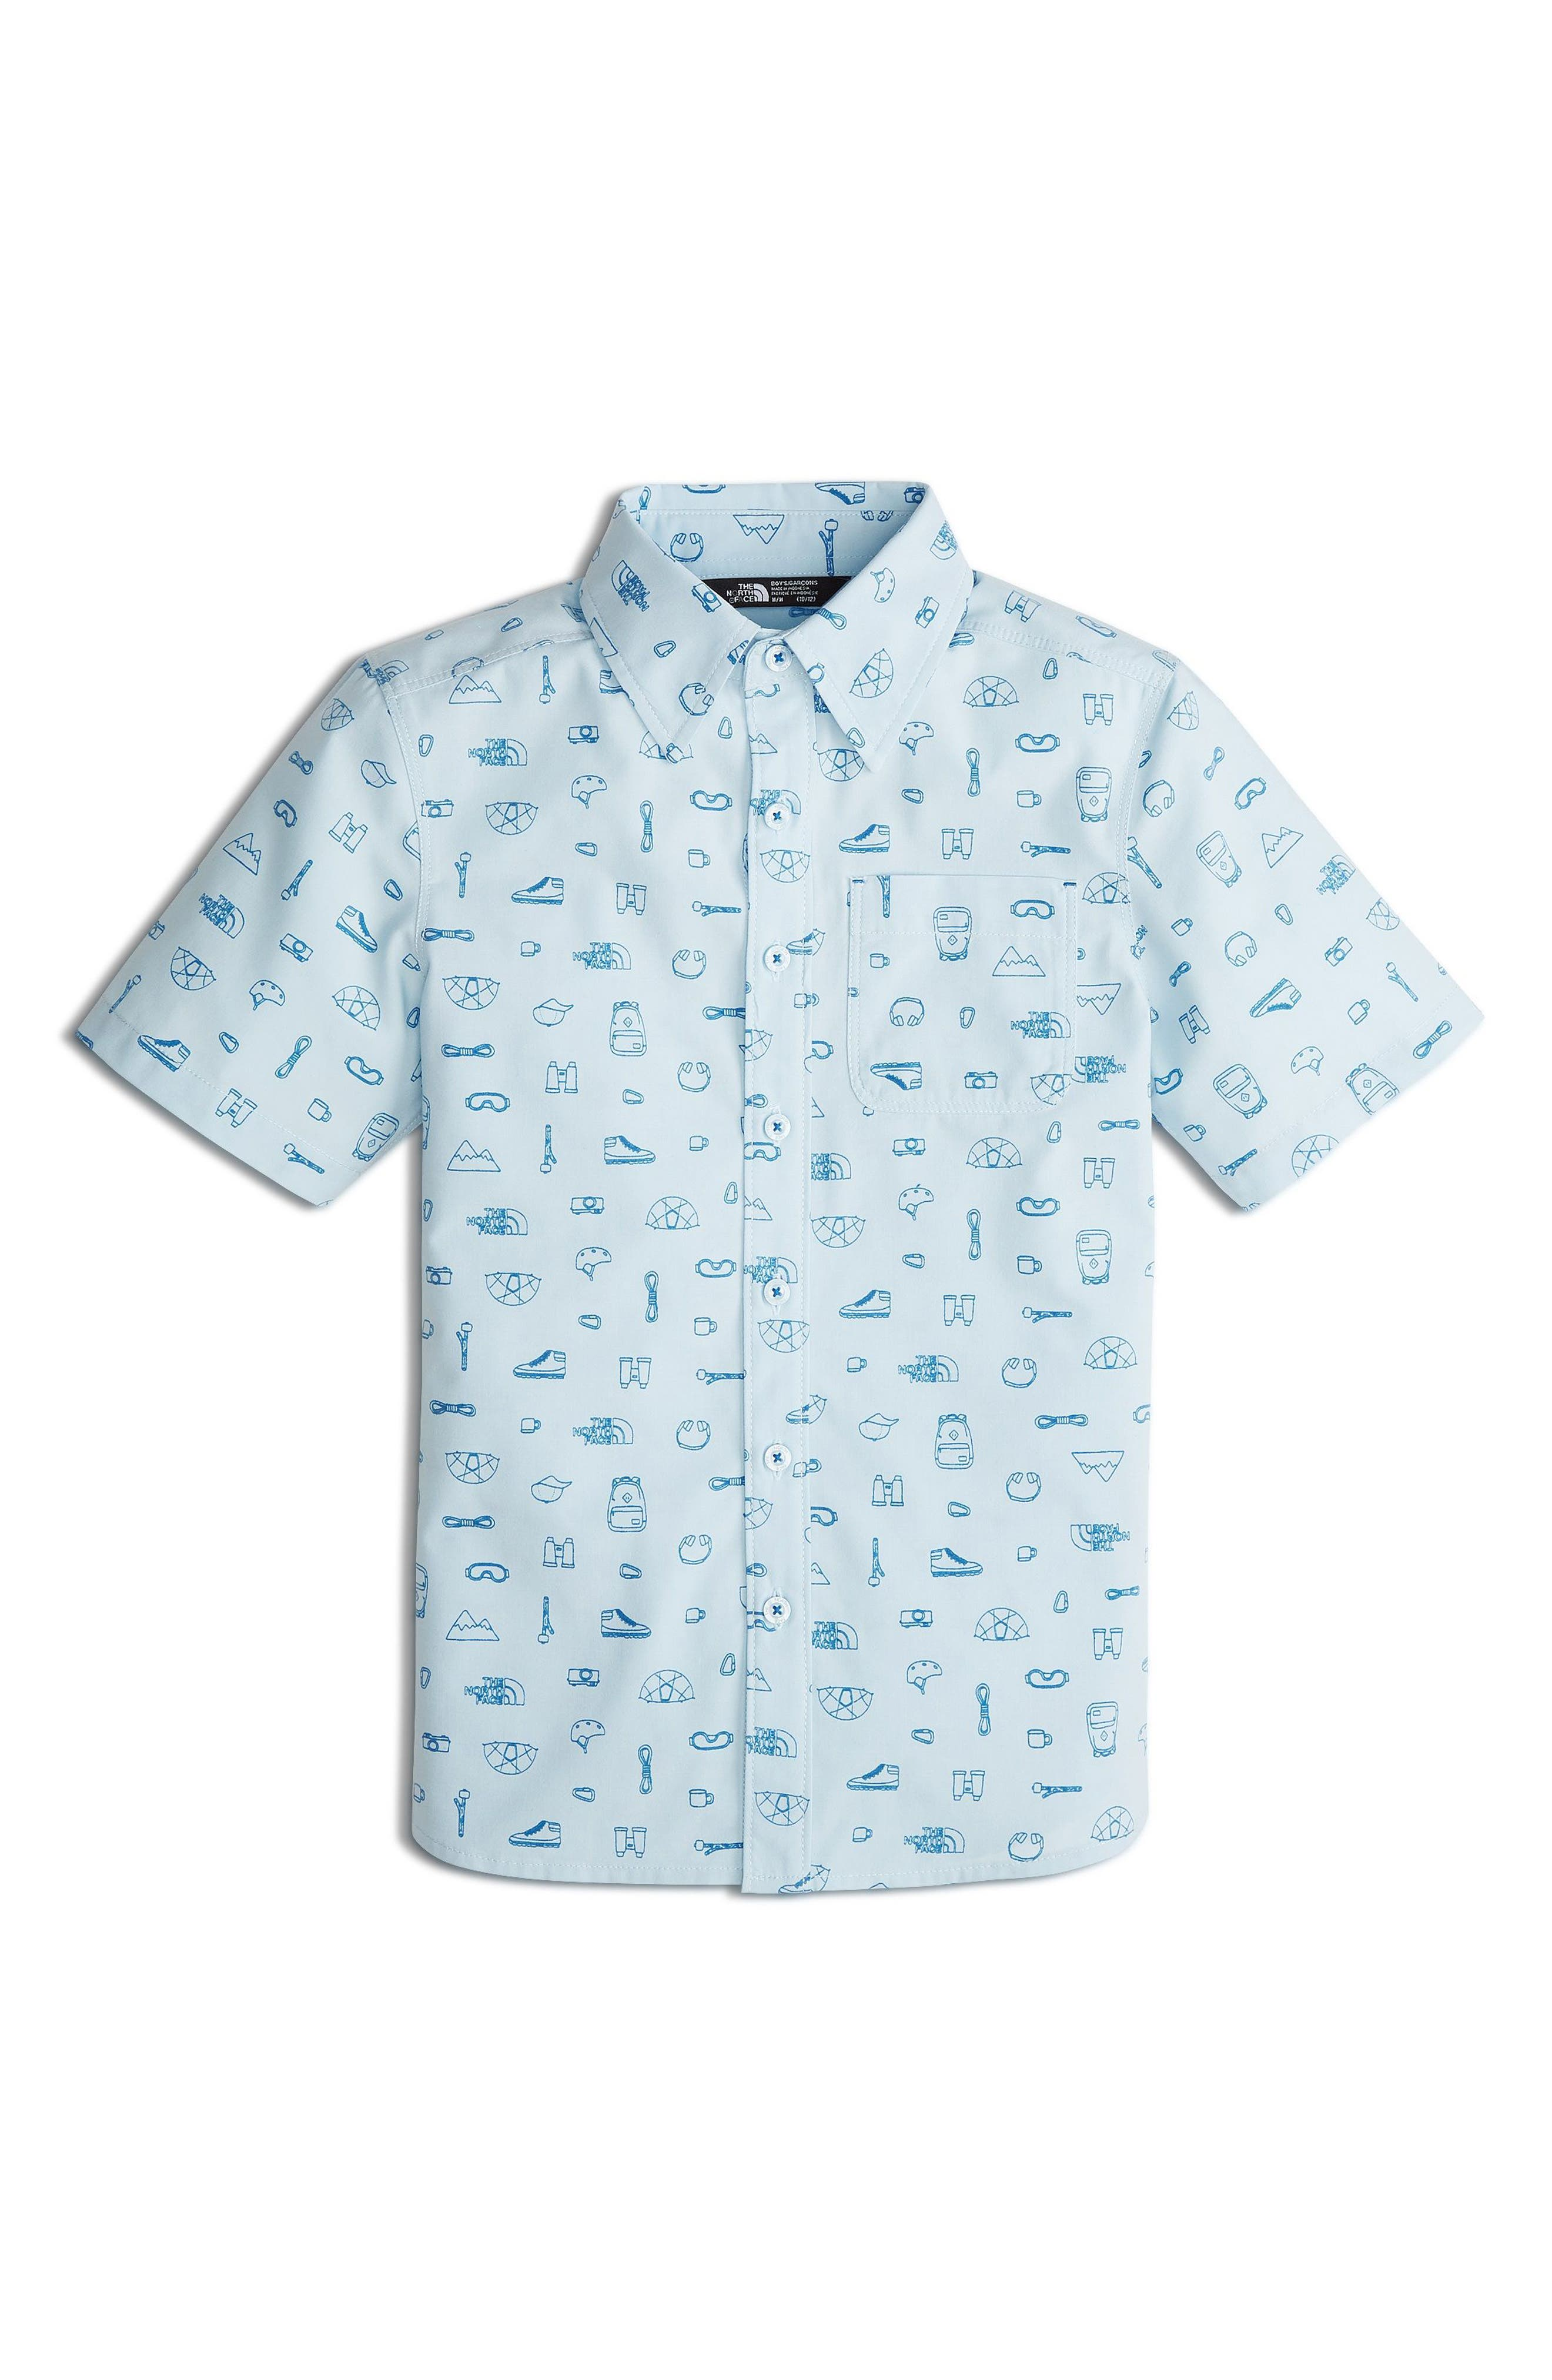 The North Face Pursuit Print Woven Shirt (Big Boys)